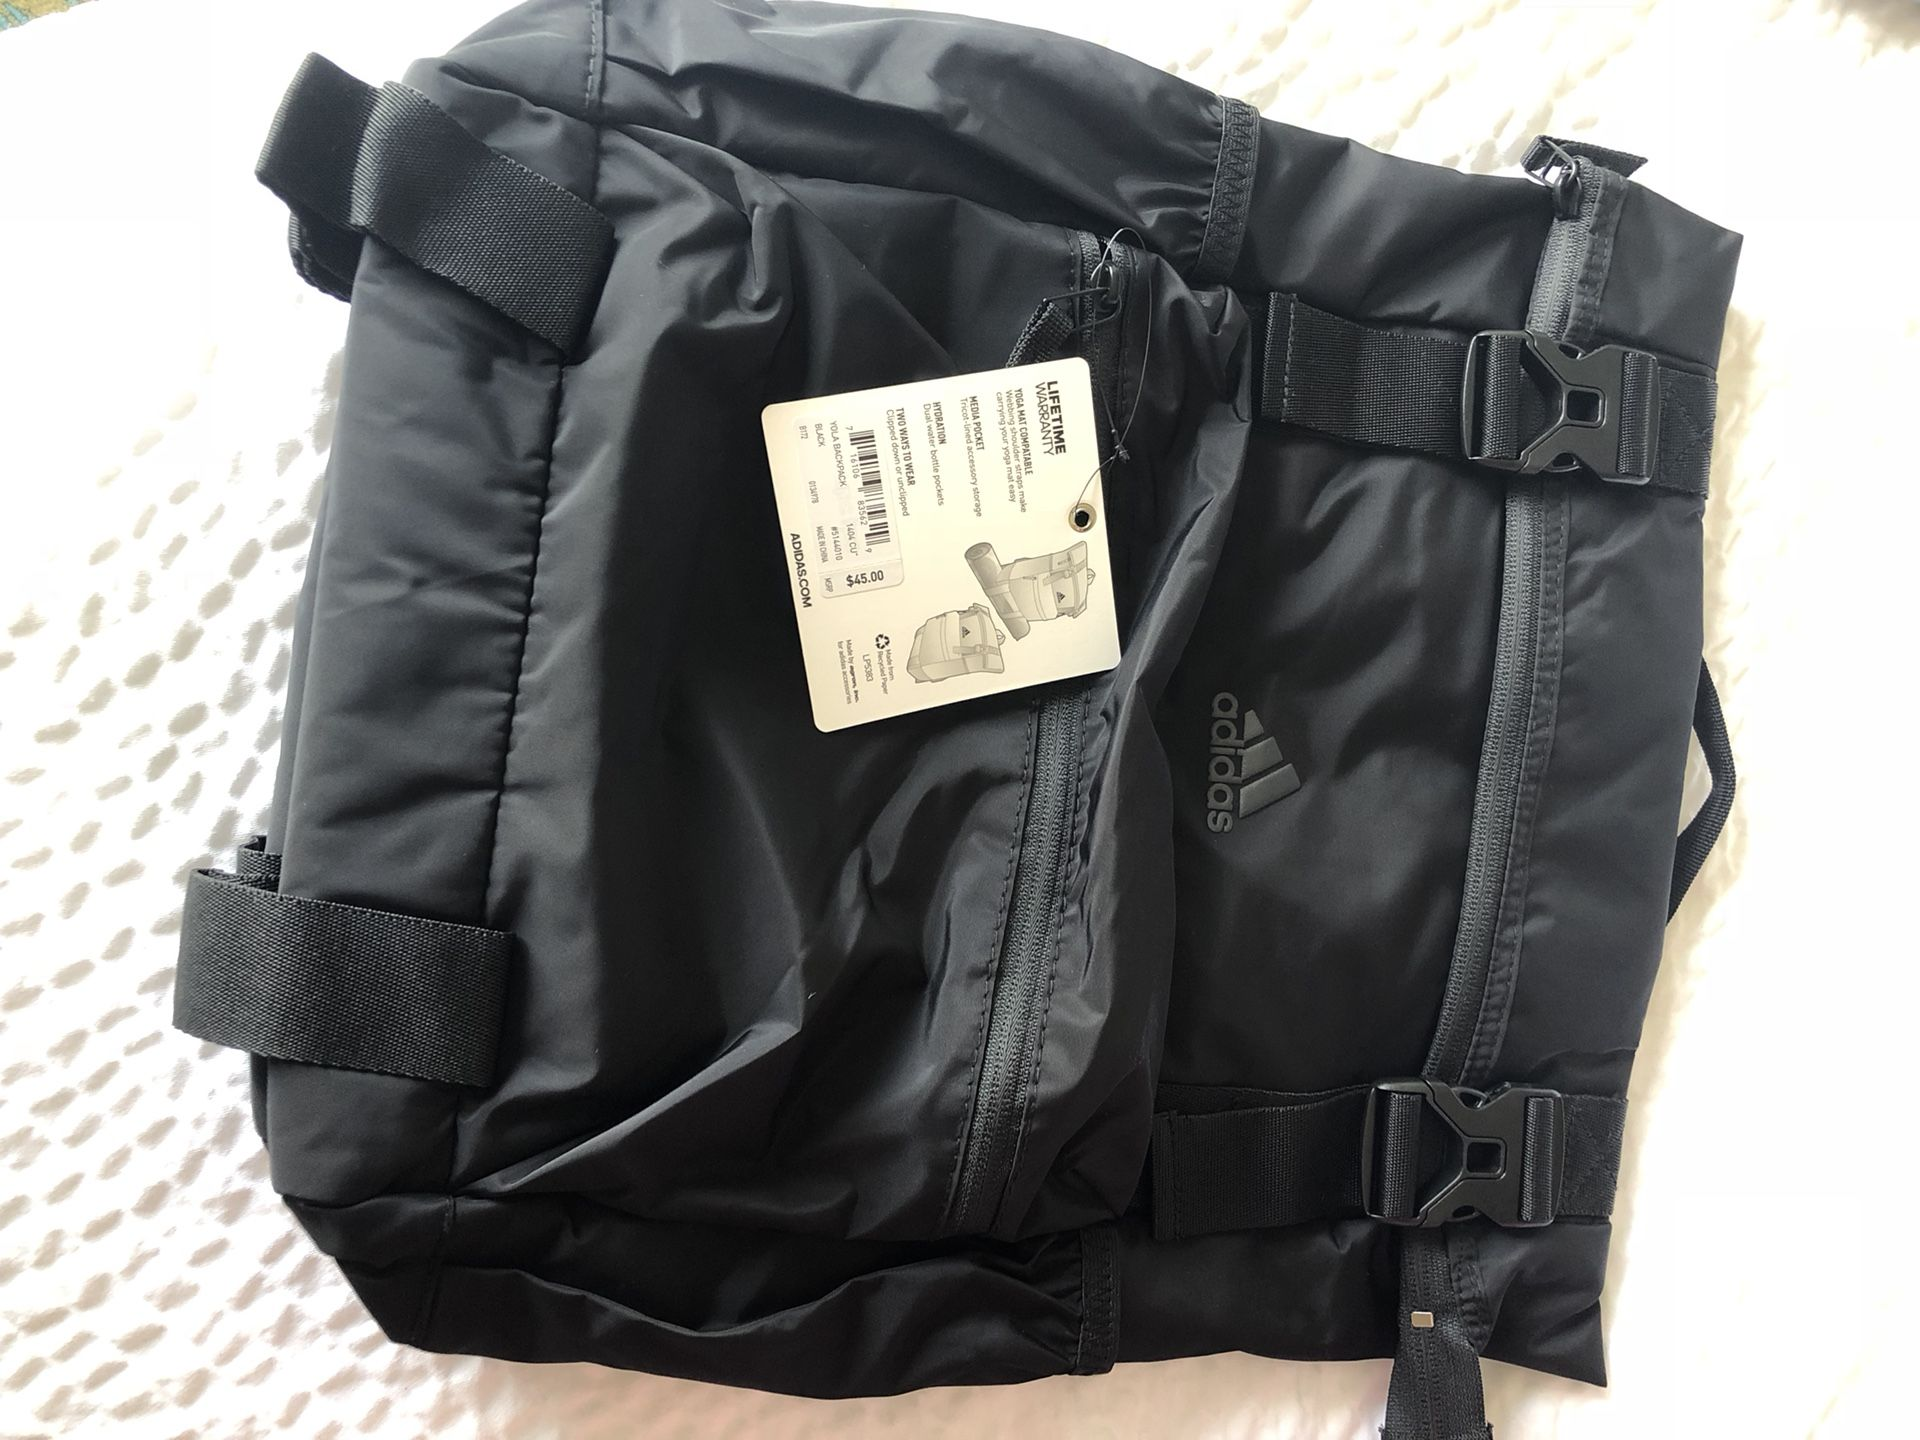 NEW never used, Adidas backpacks, available colors grey & black, 5 compartment, paid over $45, asking $20